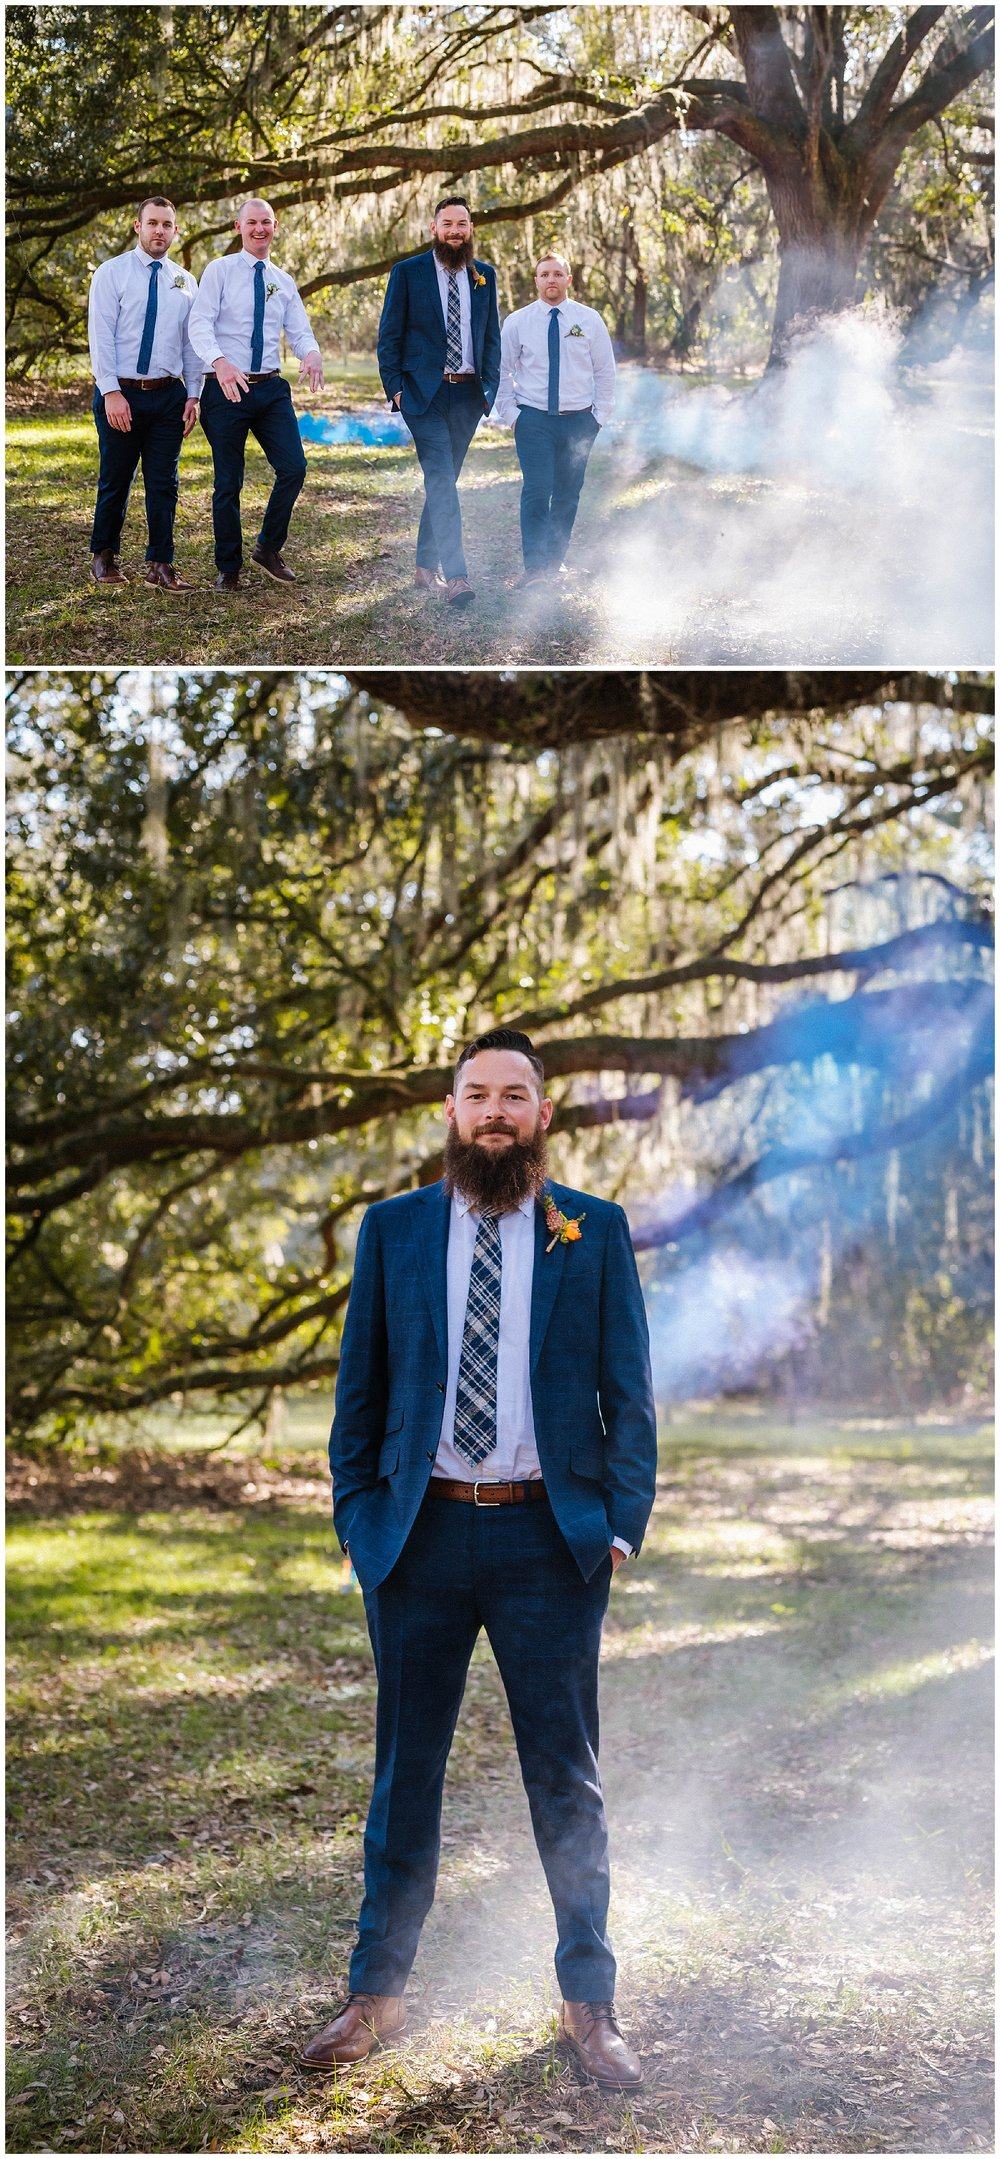 magical-outdoor-florida-wedding-smoke-bombs-flowers-crown-beard_0006.jpg